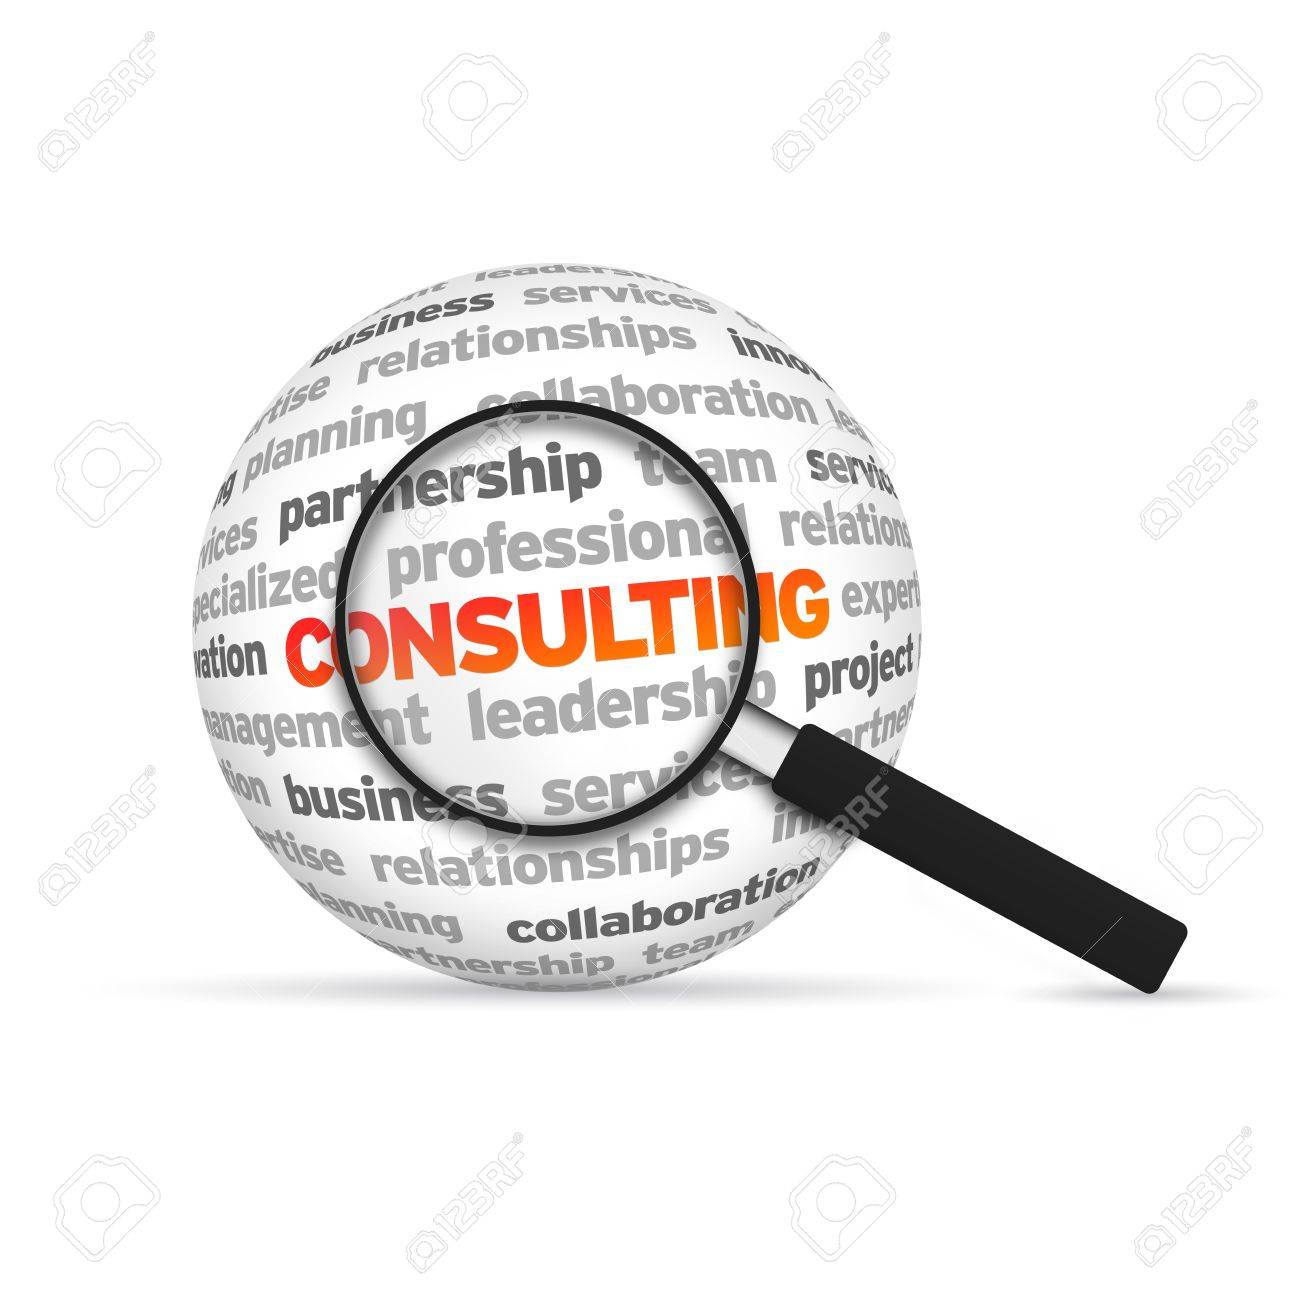 Consulting 3d Word Sphere with magnifying glass on white background Stock Photo - 14037801